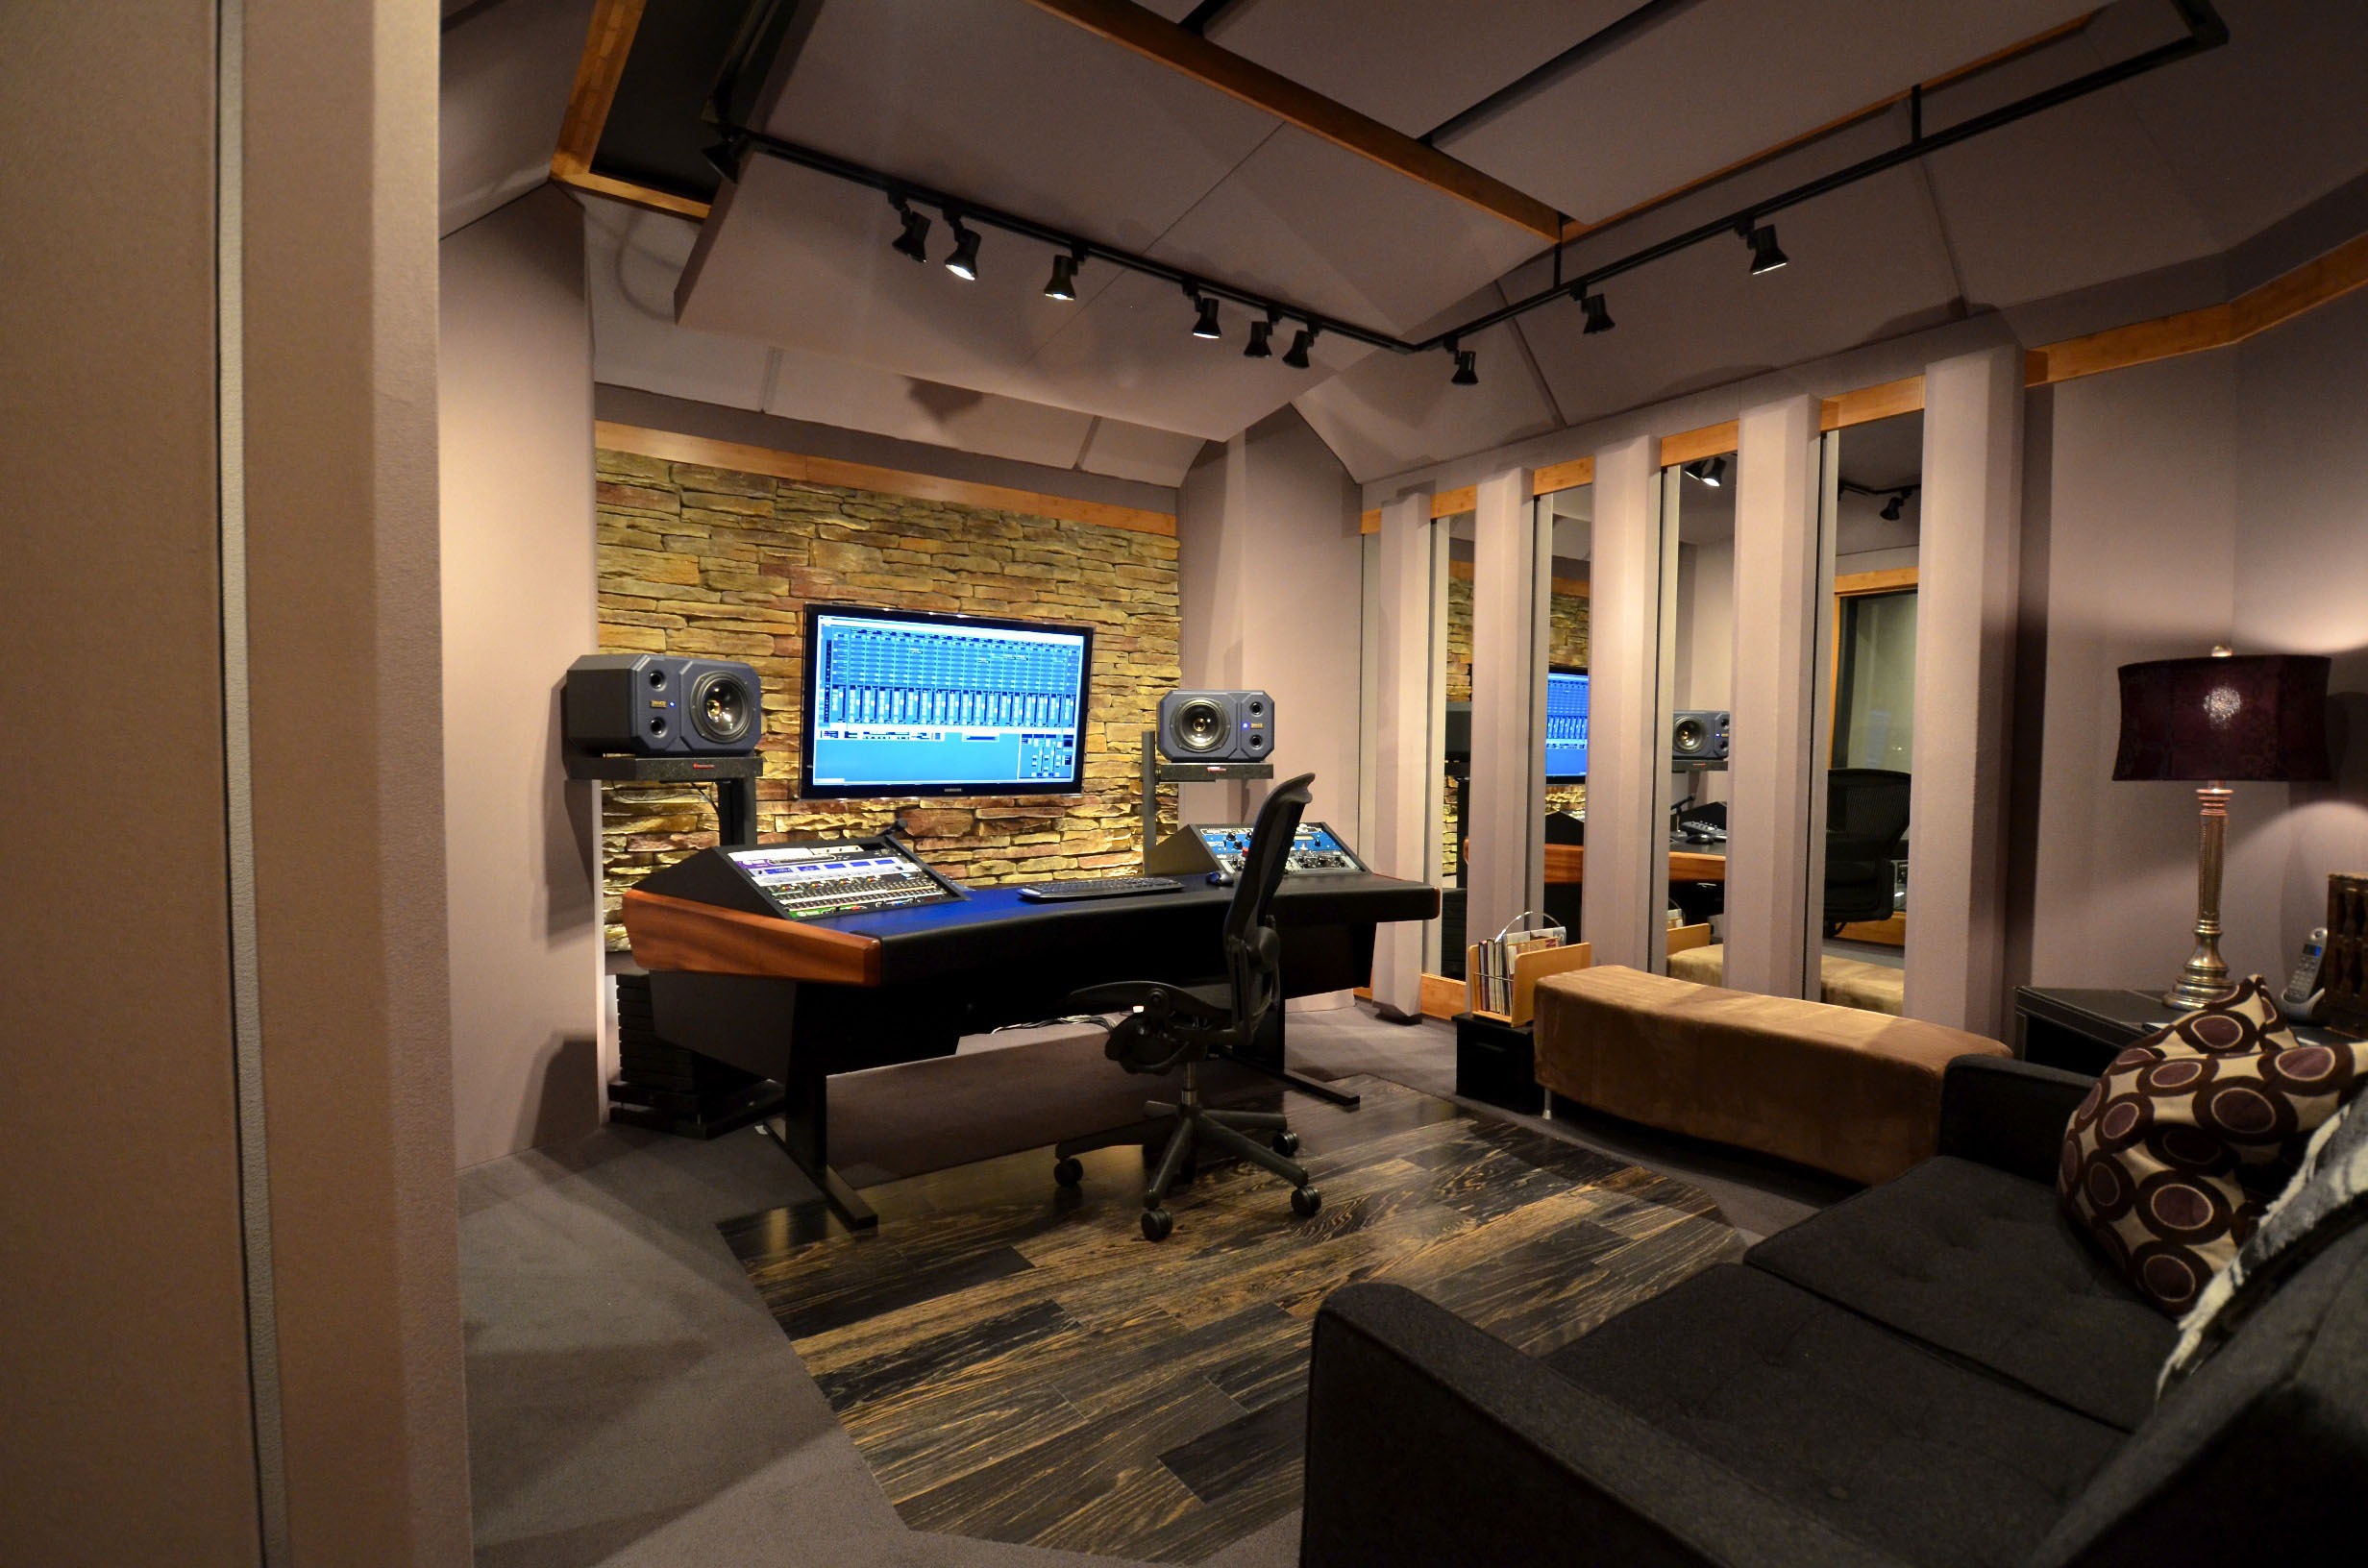 montanna recording studio decoration ideas design interior with best exclusive decorating music